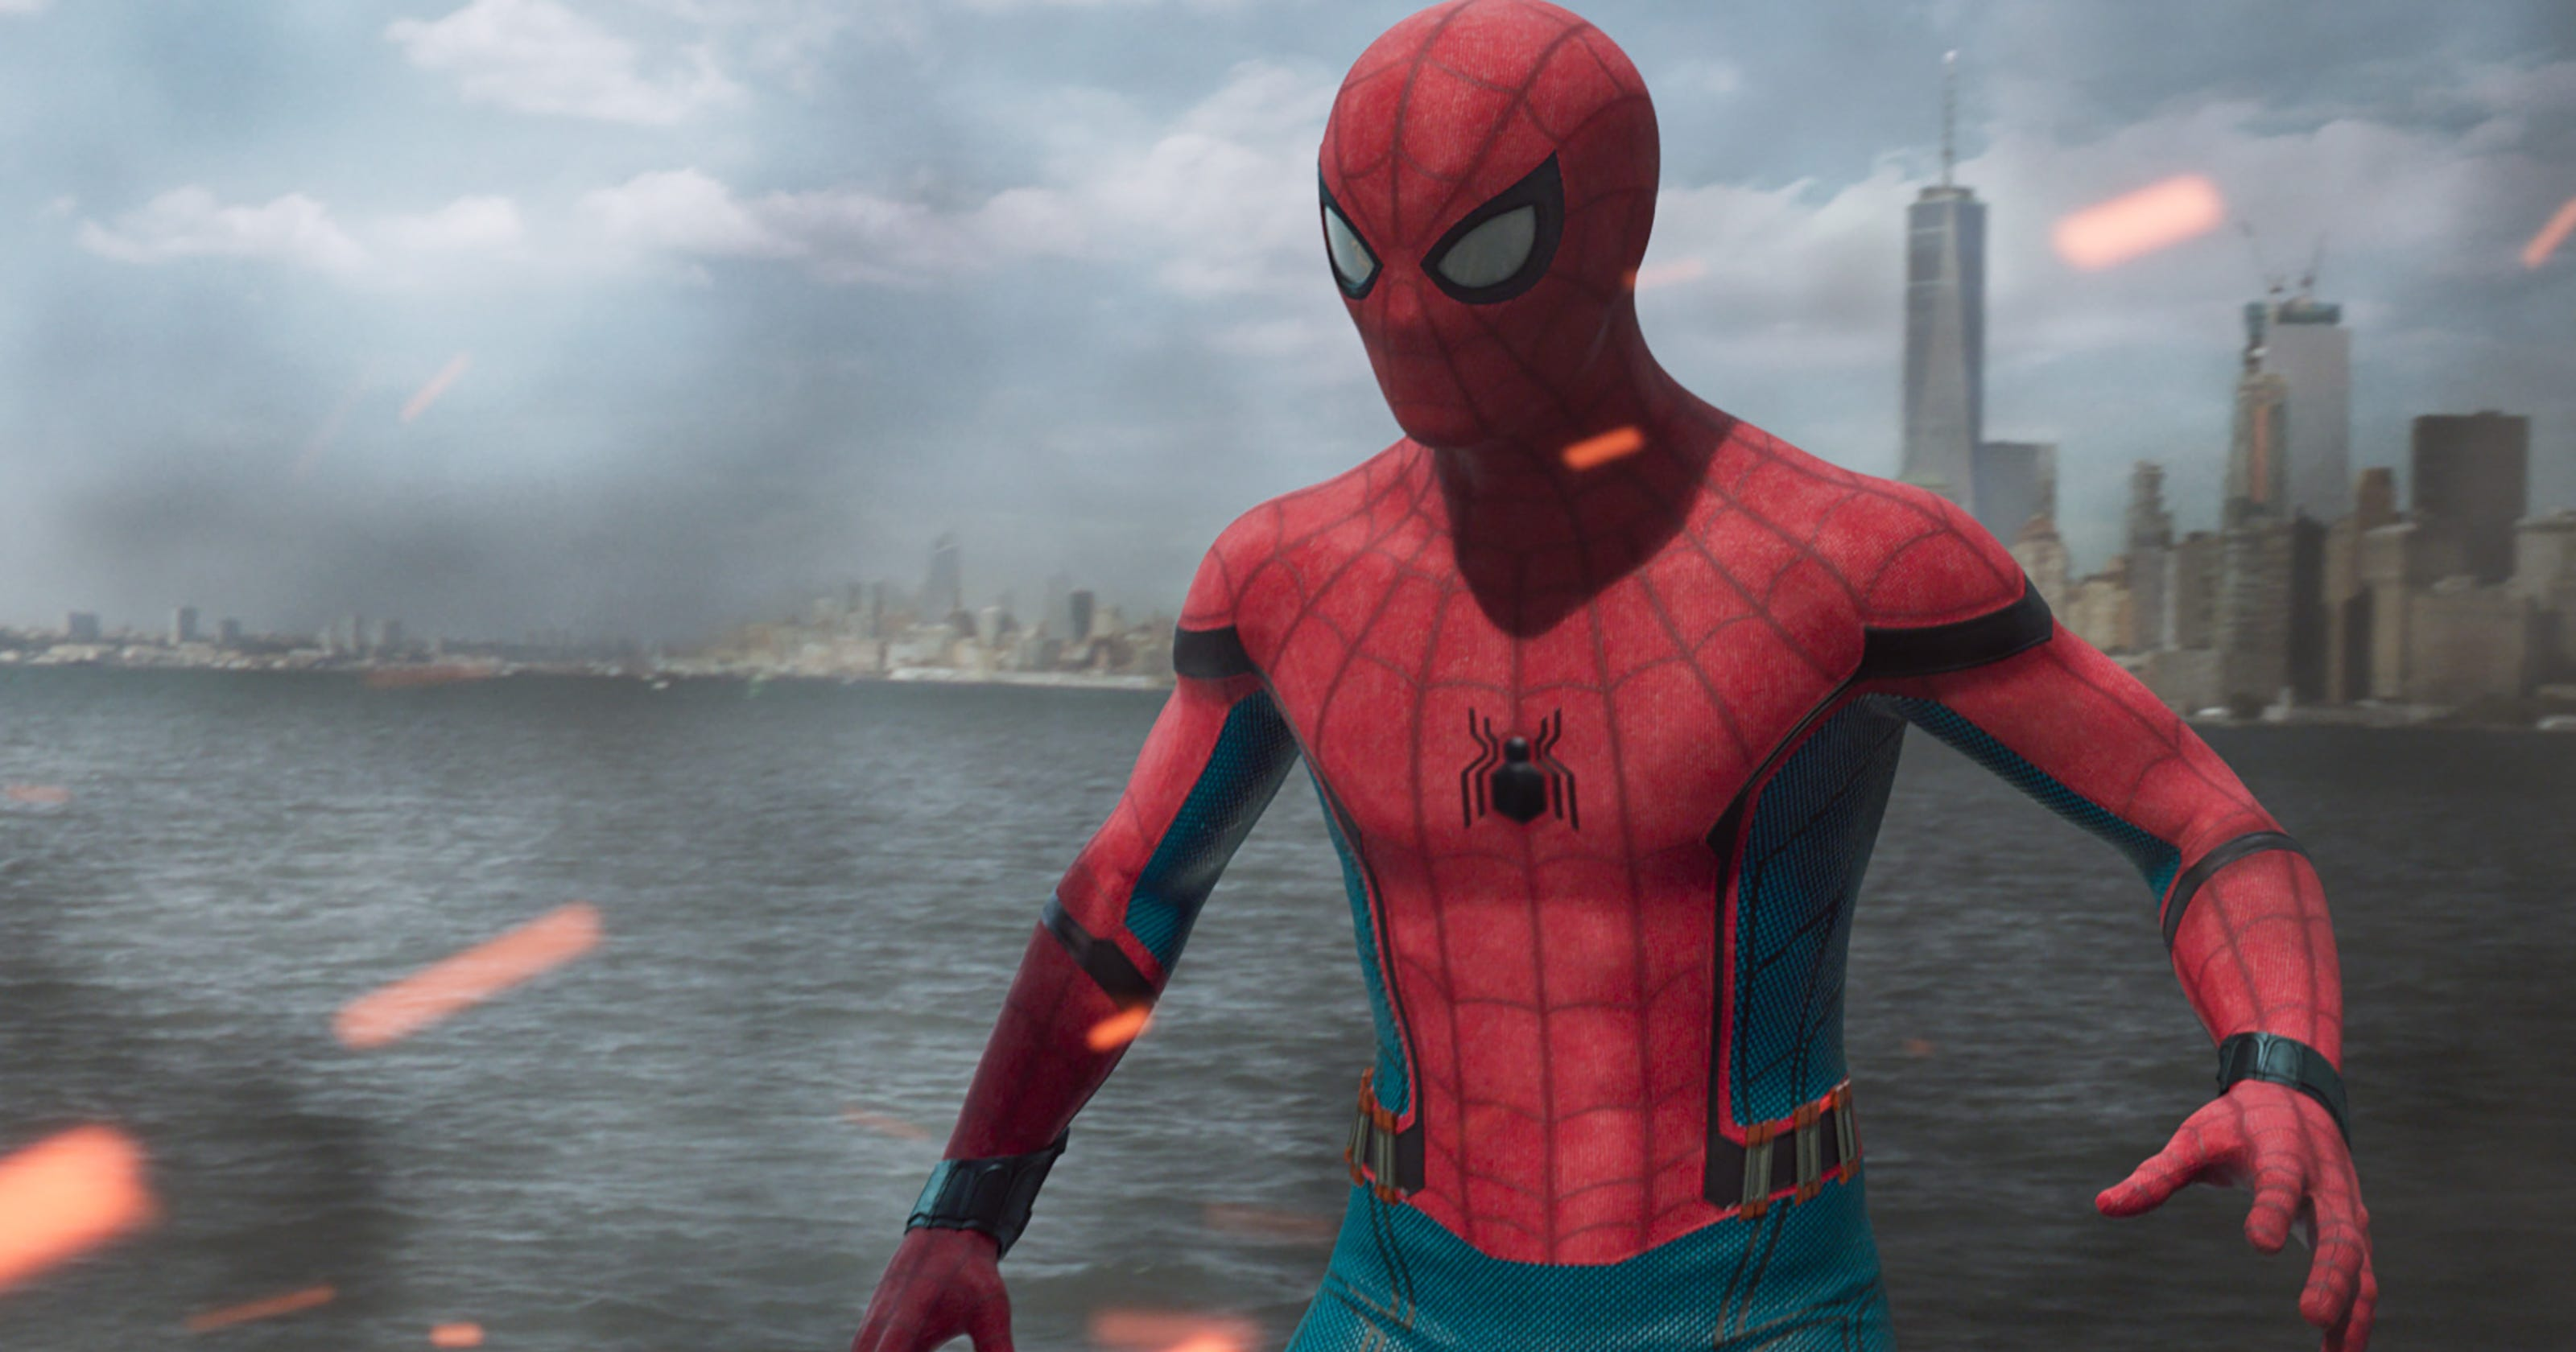 bd5c24e27f18a Let's decode the 'Spider-Man: Homecoming' ending and bonus scenes  (spoilers!)